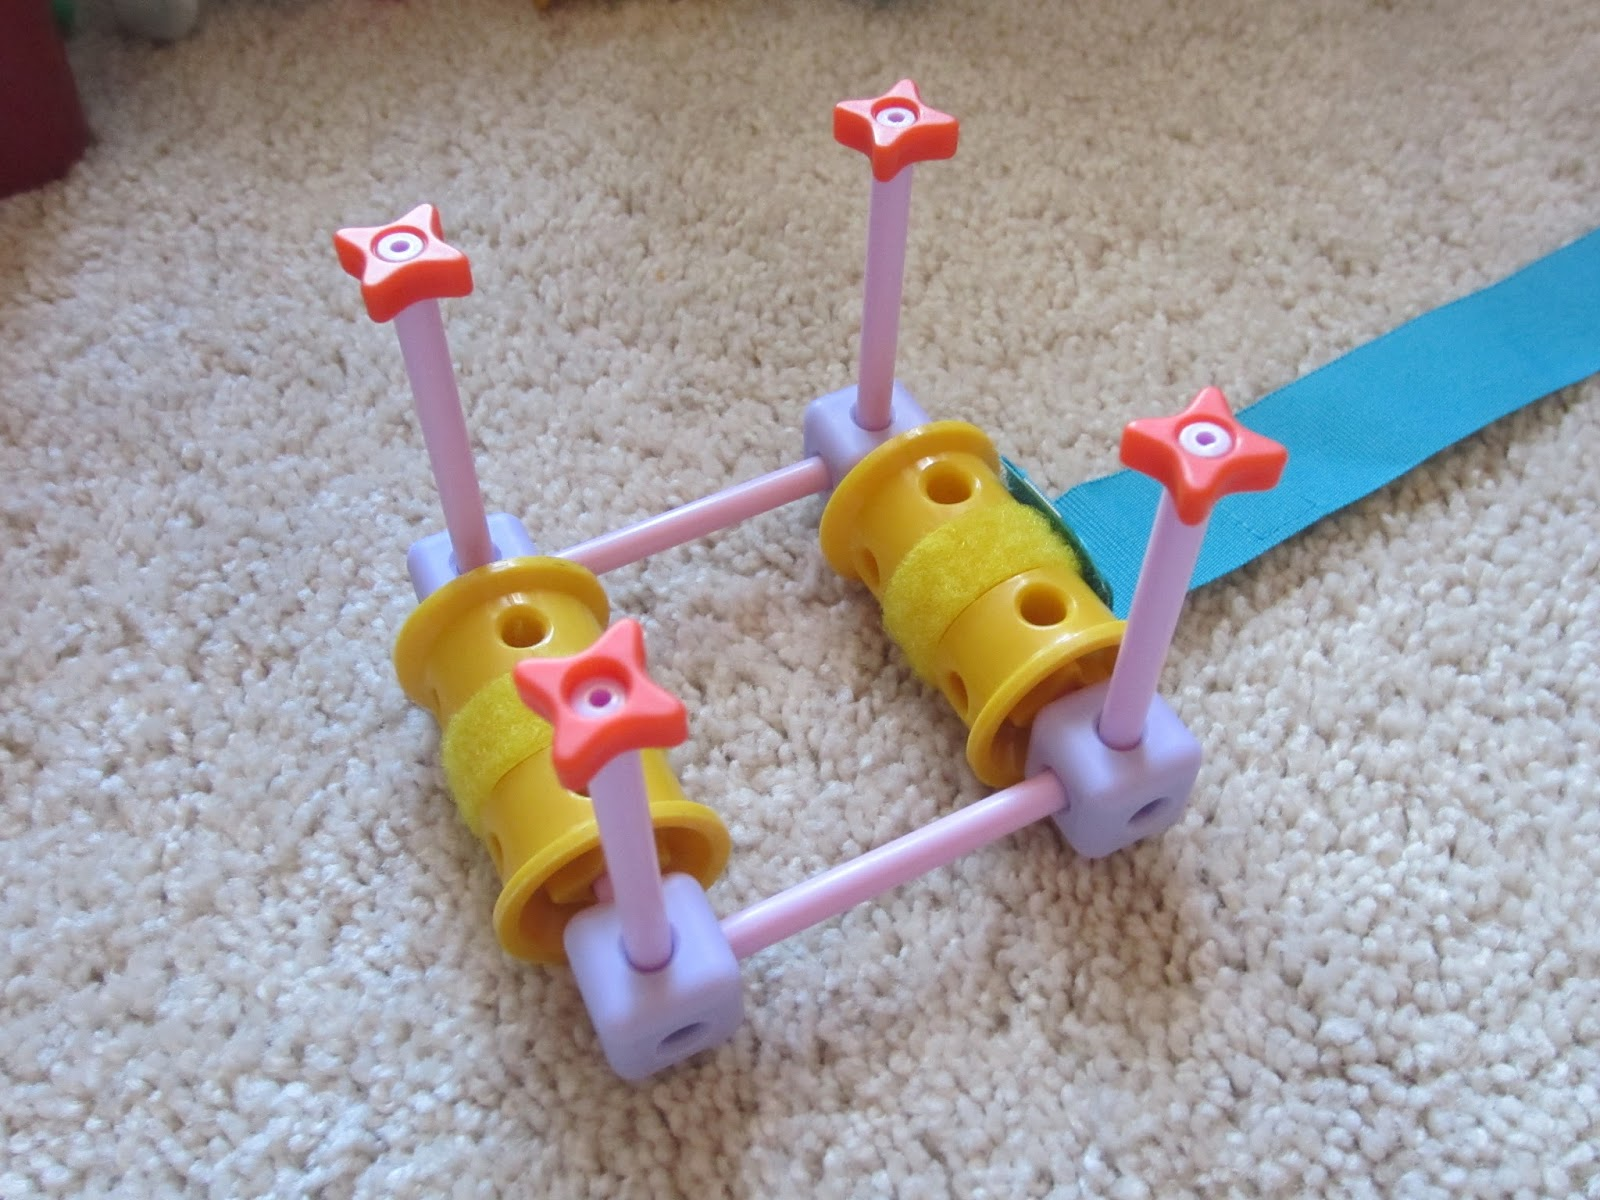 Goldie Blox Invention: A Girls Building Toy